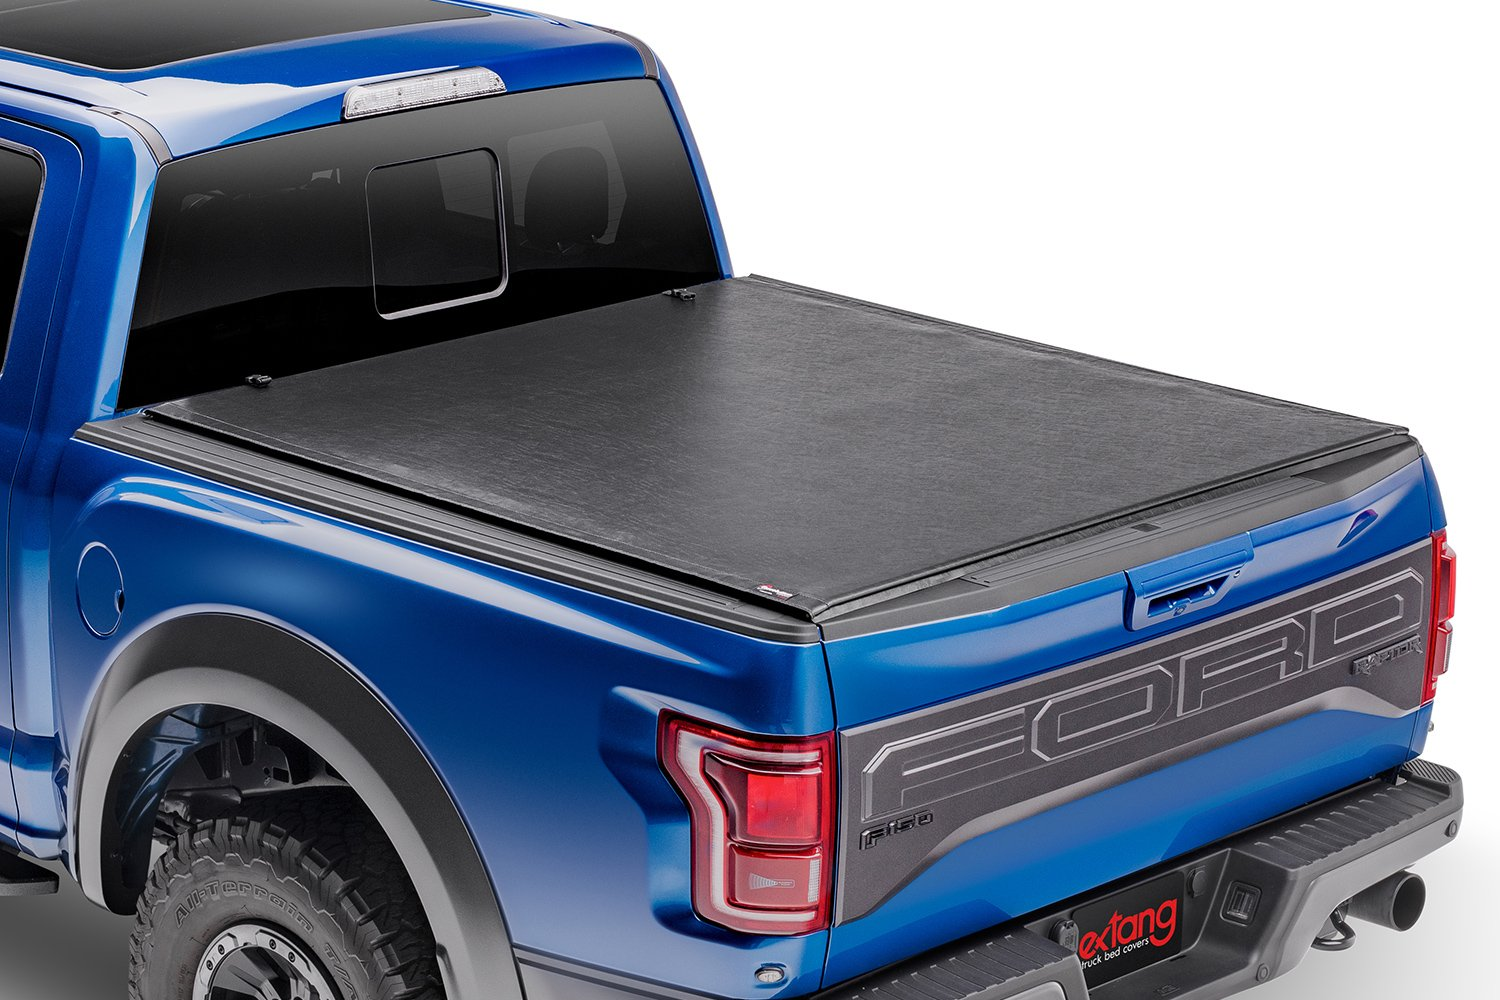 Extang Revolution Tonneau Covers, Extang Soft Top Tonneau Cover